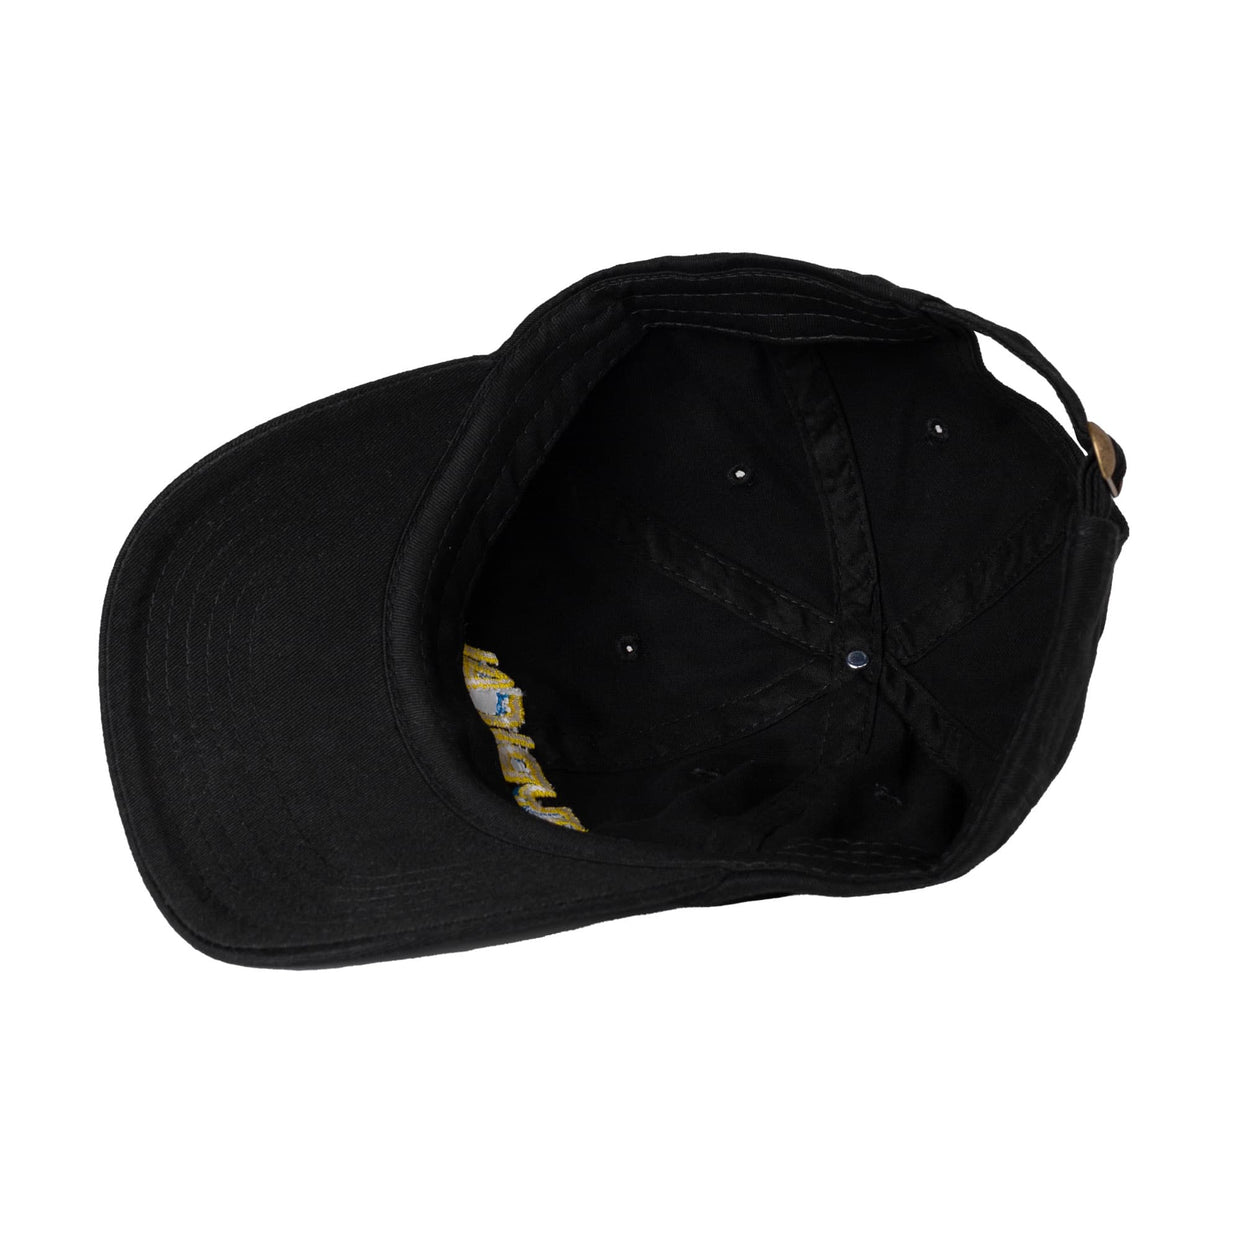 Typical 'Warp' Dad Hat - Black